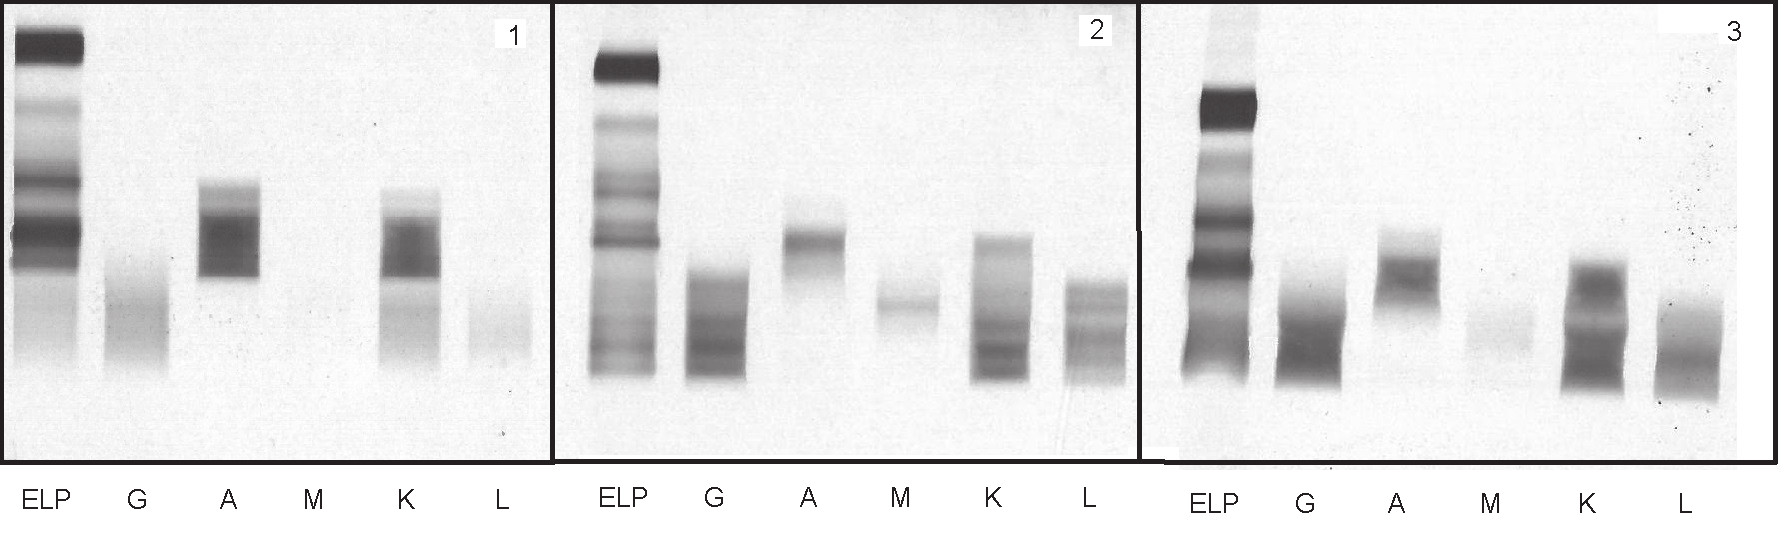 Fig. 2. Transient presence of oligoclonal bands in patient after autologous transplantation;